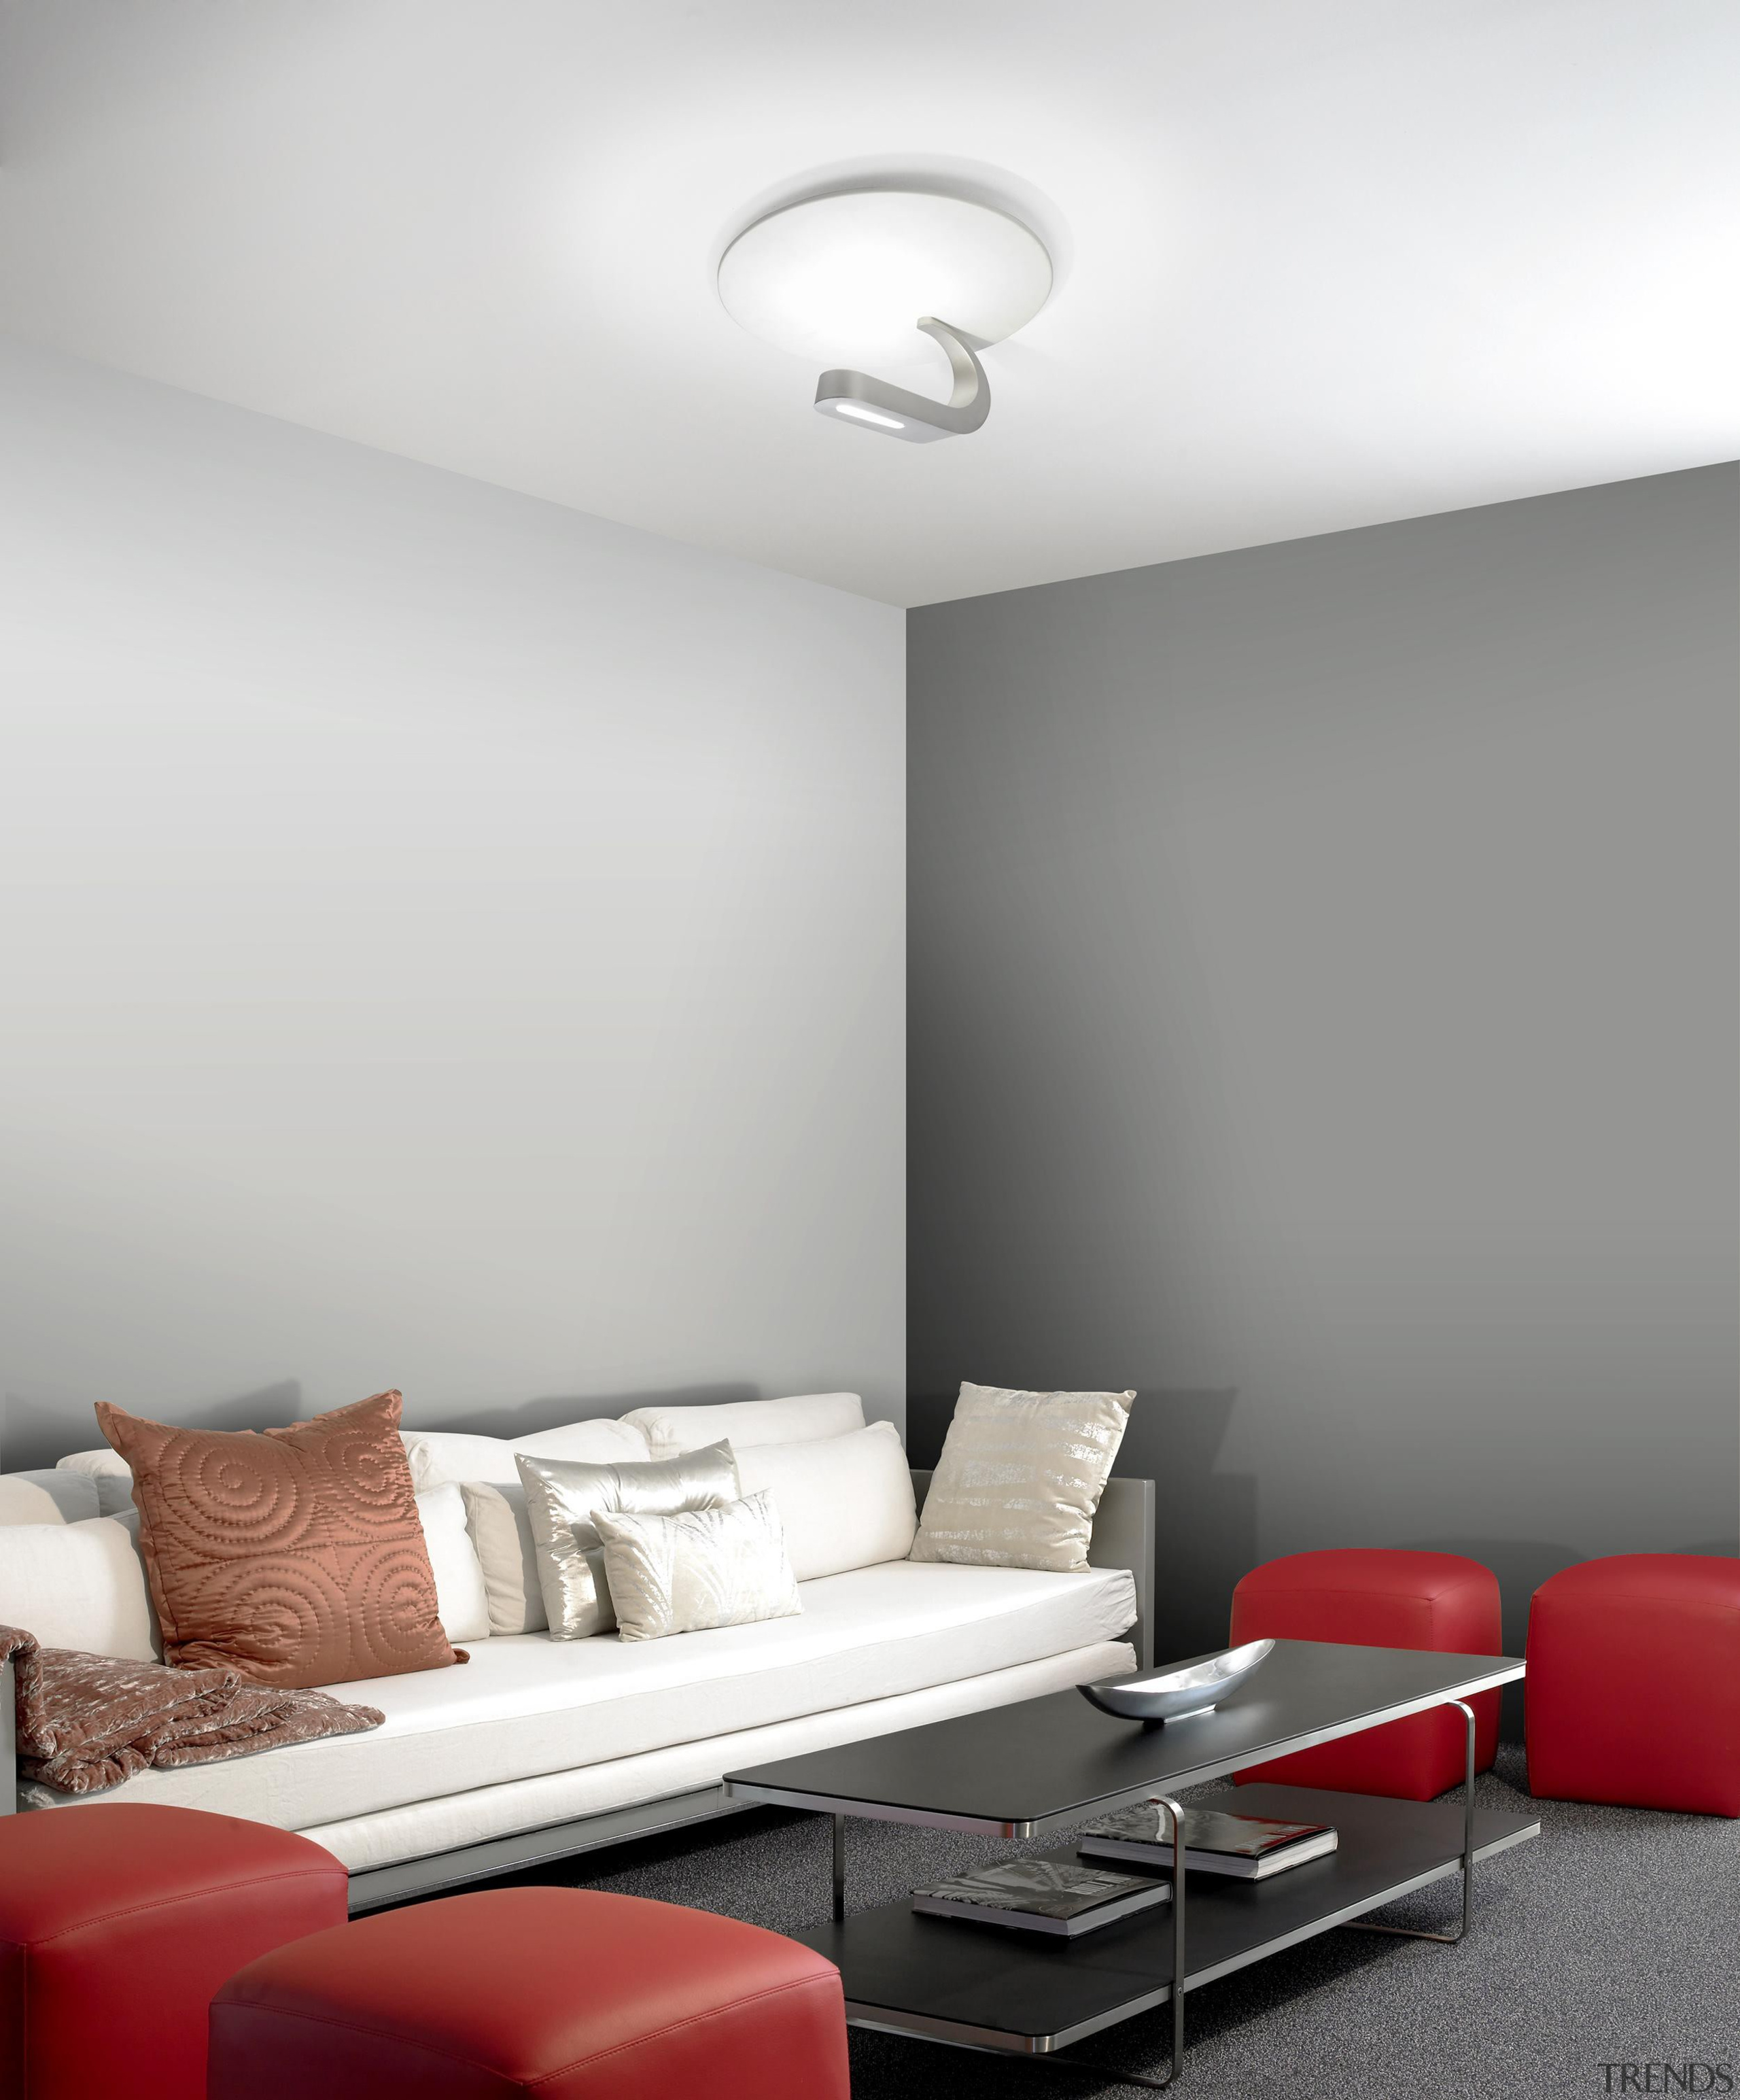 Trac from Grok, Spain - Ceiling Lights - angle, ceiling, interior design, light fixture, lighting, living room, product design, room, table, wall, gray, white